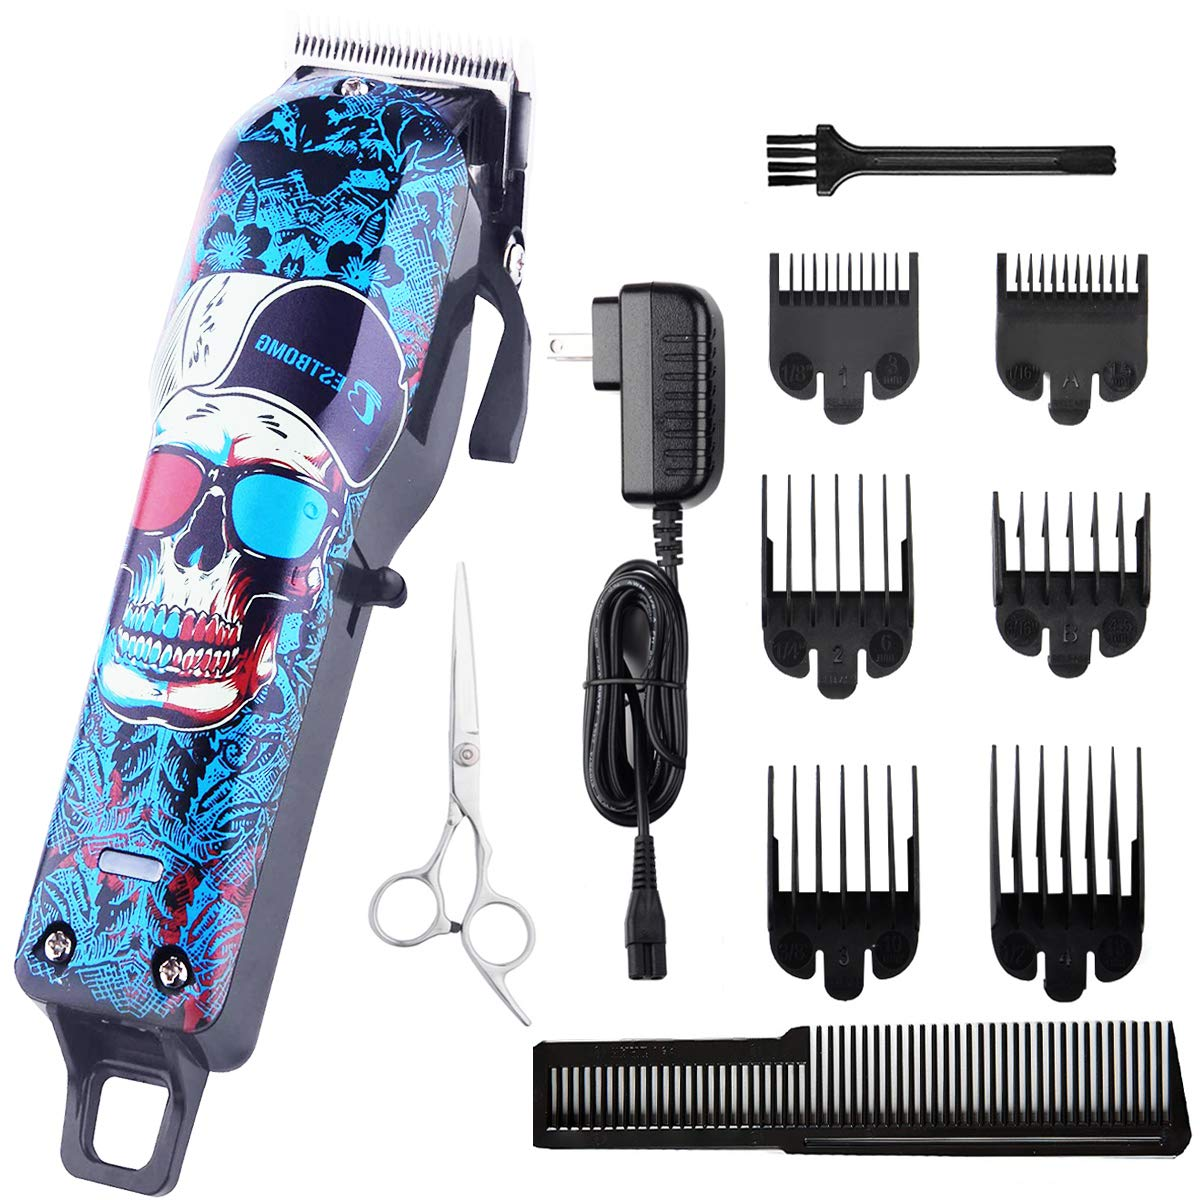 Skull Pro Cordless Hair Clippers